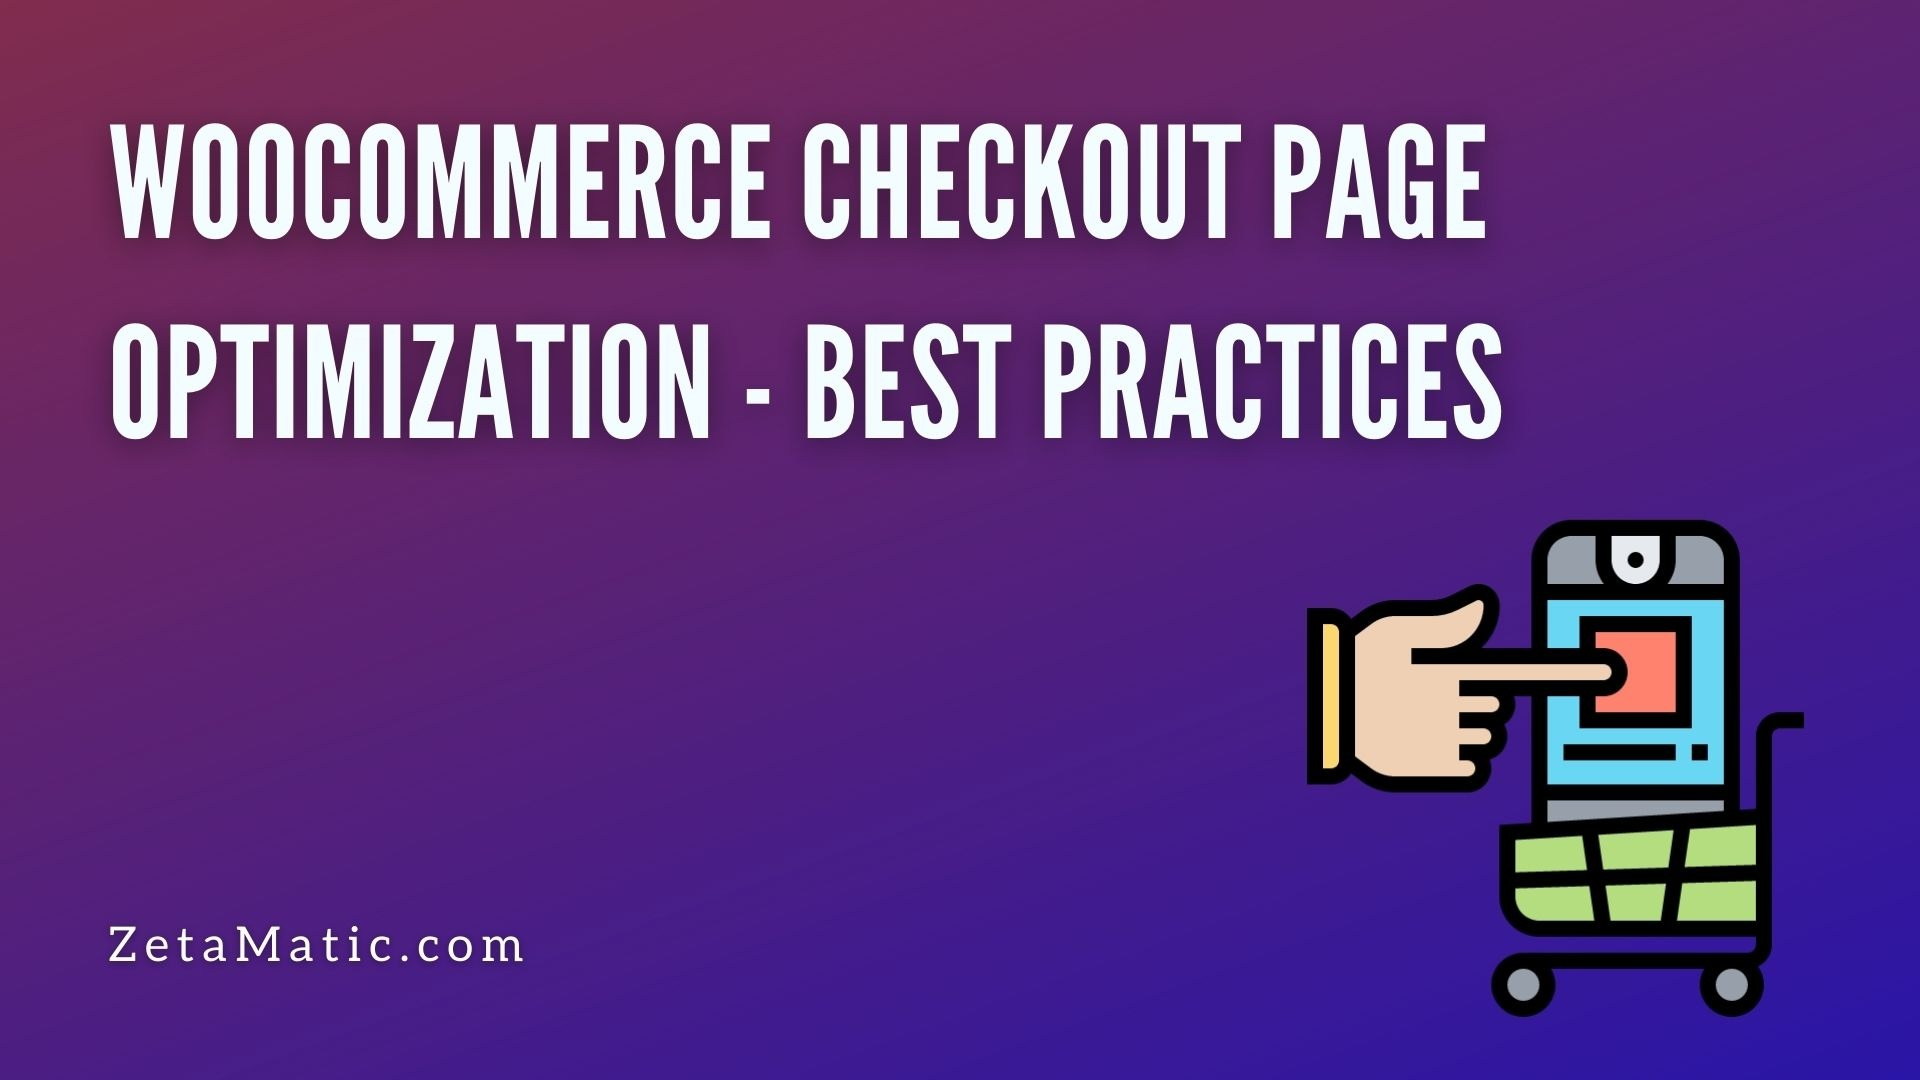 WooCommerce Checkout Page Optimization - Best Practices